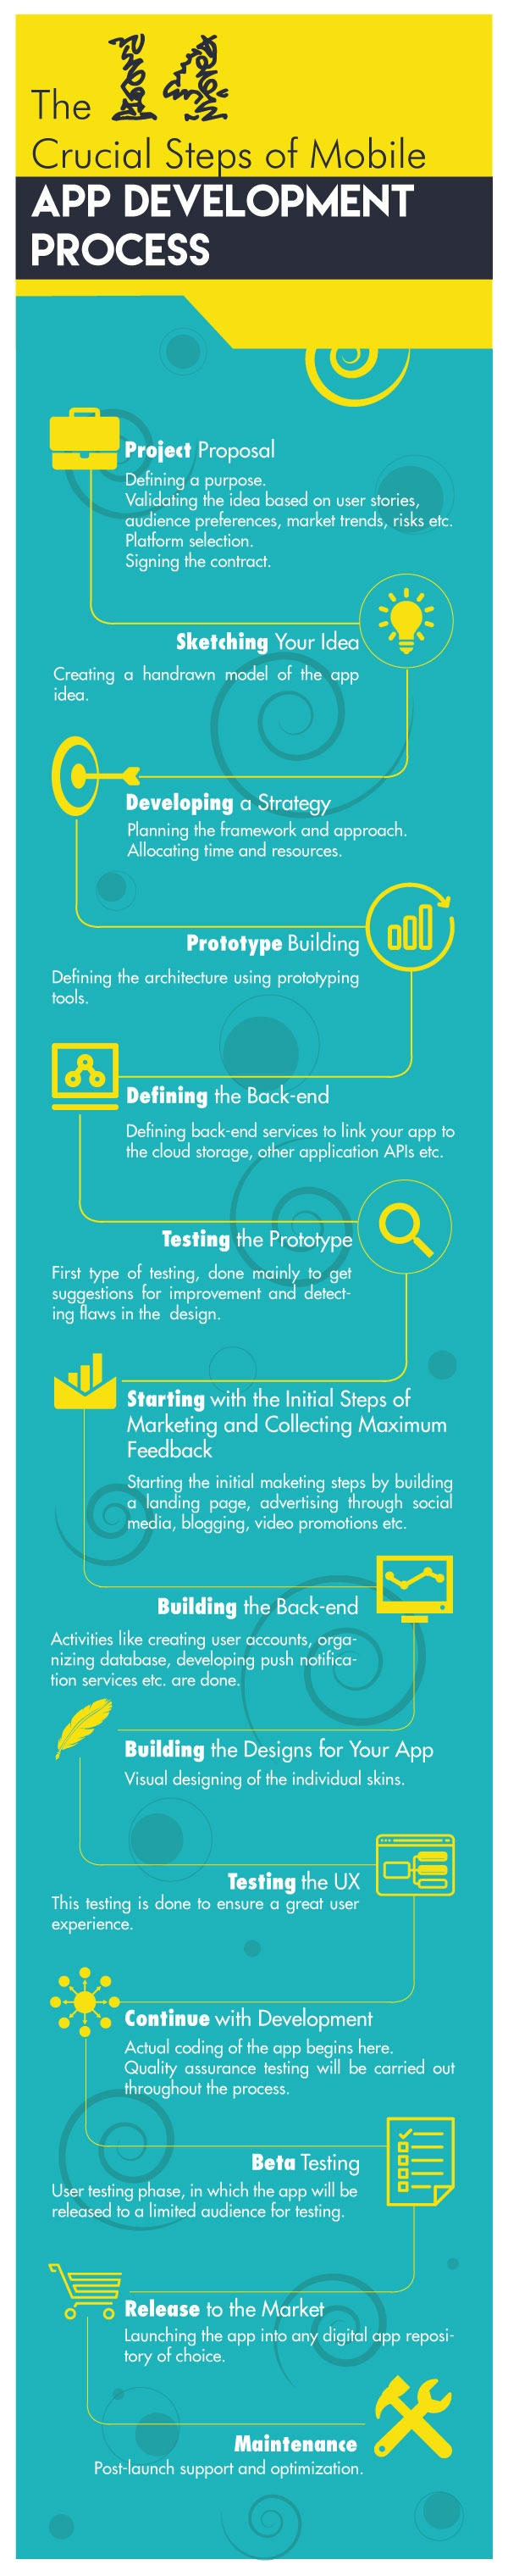 The 14 Crucial Steps of Mobile App Development